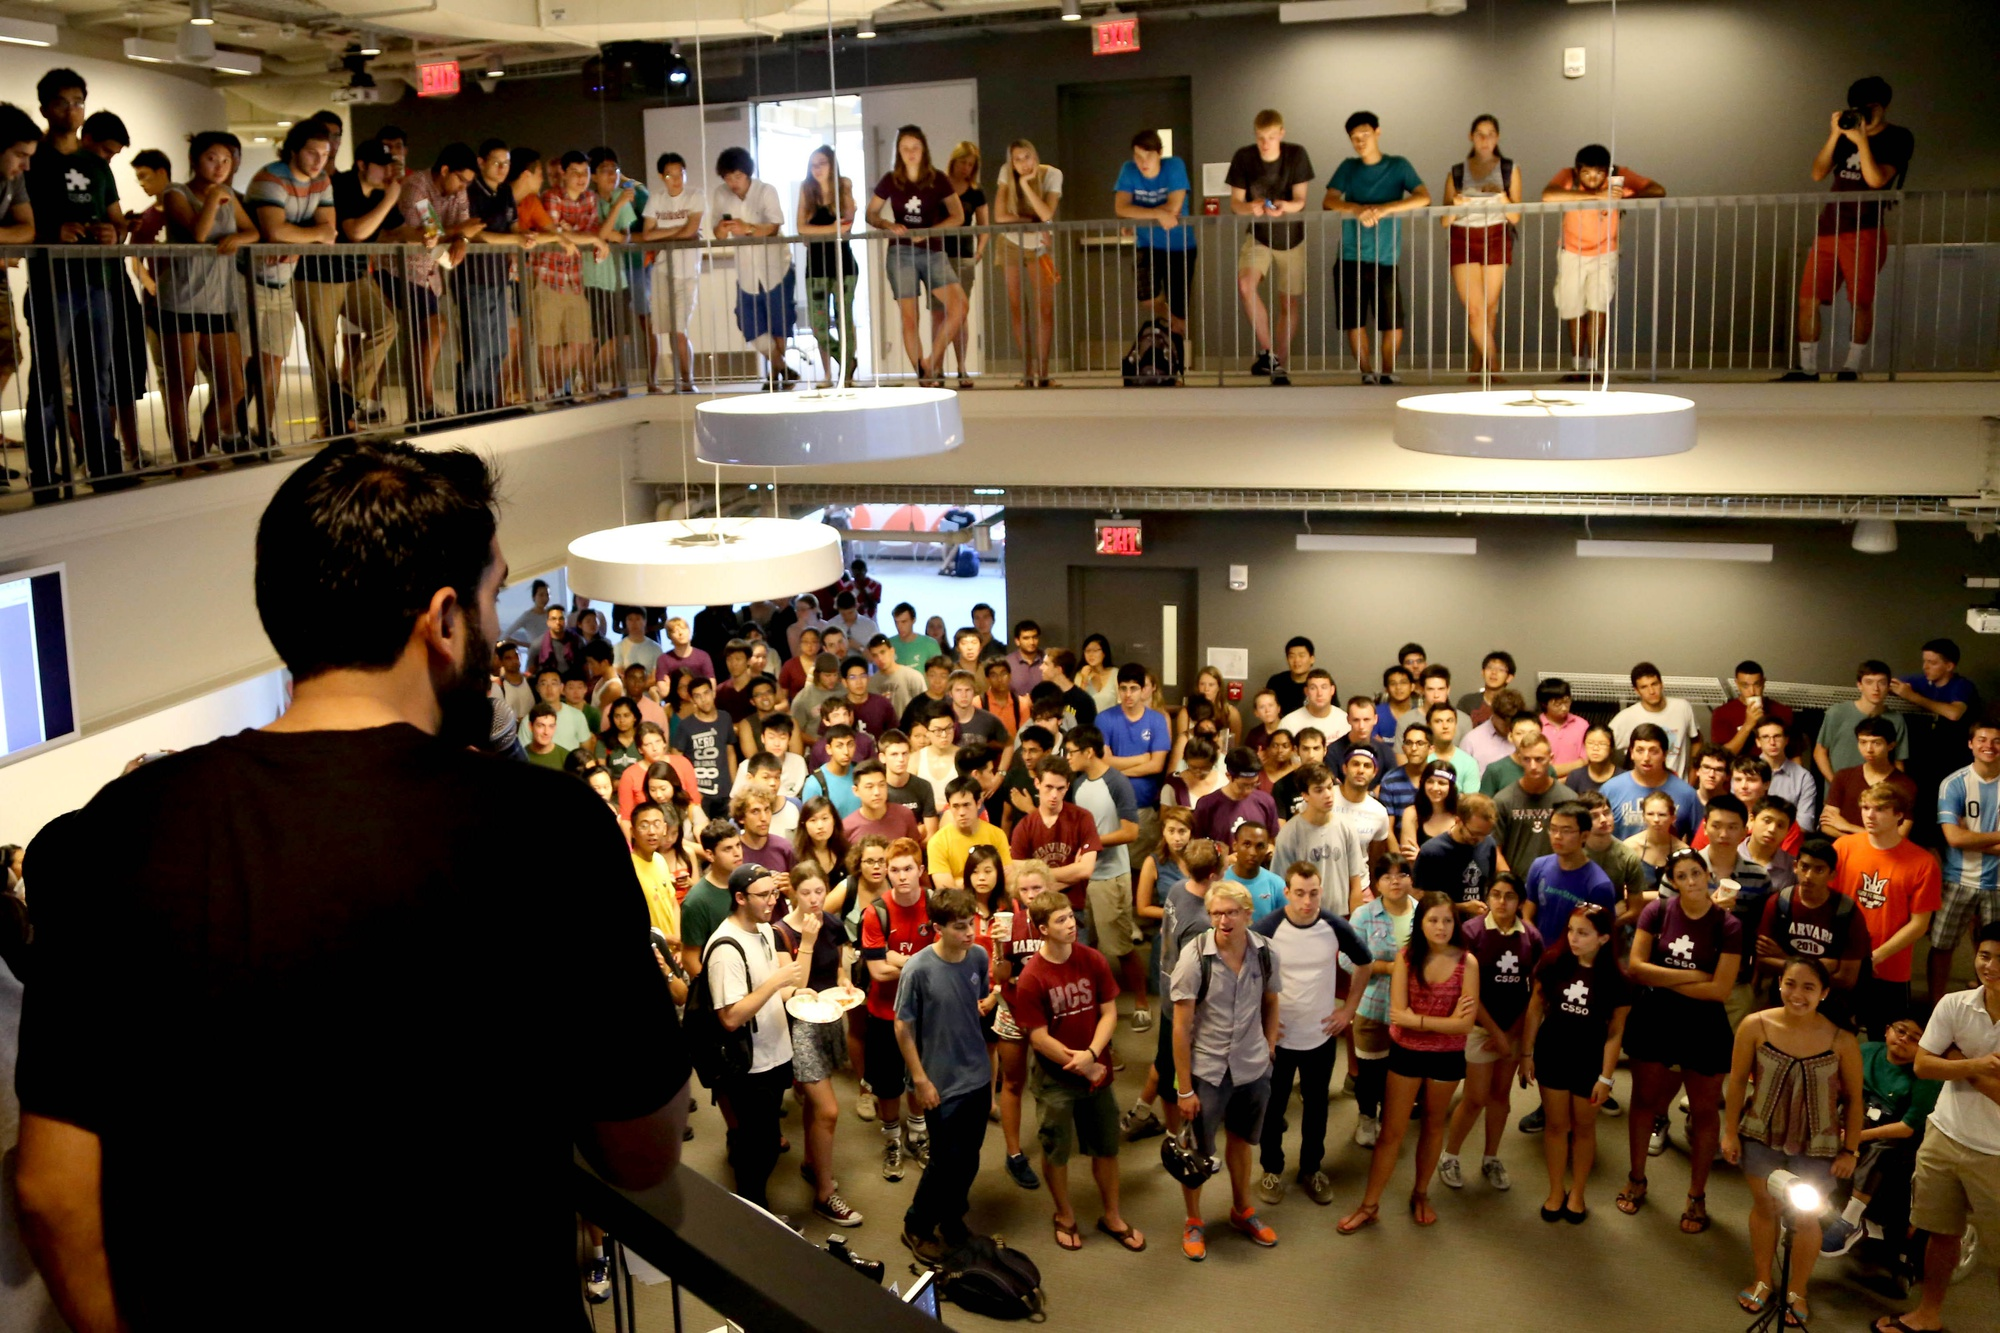 """Mohammed N. Oosman, a university recruiter for Facebook, welcomes the crowd at CS50 Puzzle Day. Malan has described """"a mutually beneficial relationship"""" between CS50 and tech companies."""